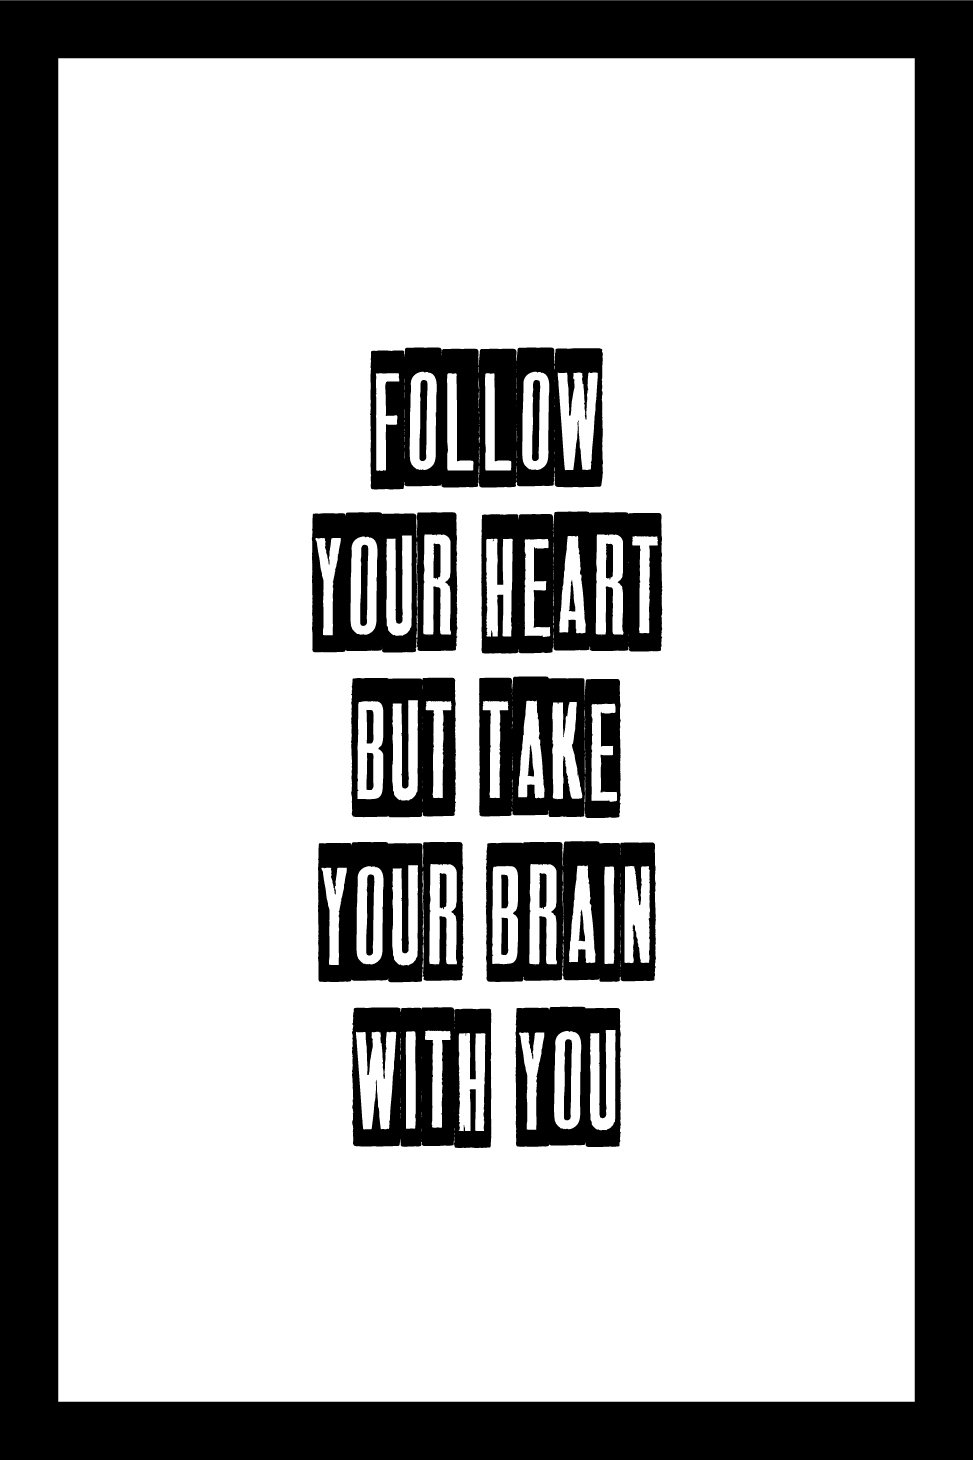 Follow Your Heart Follow Your Heart But Take Your Brain With You Ein Weiser Rat